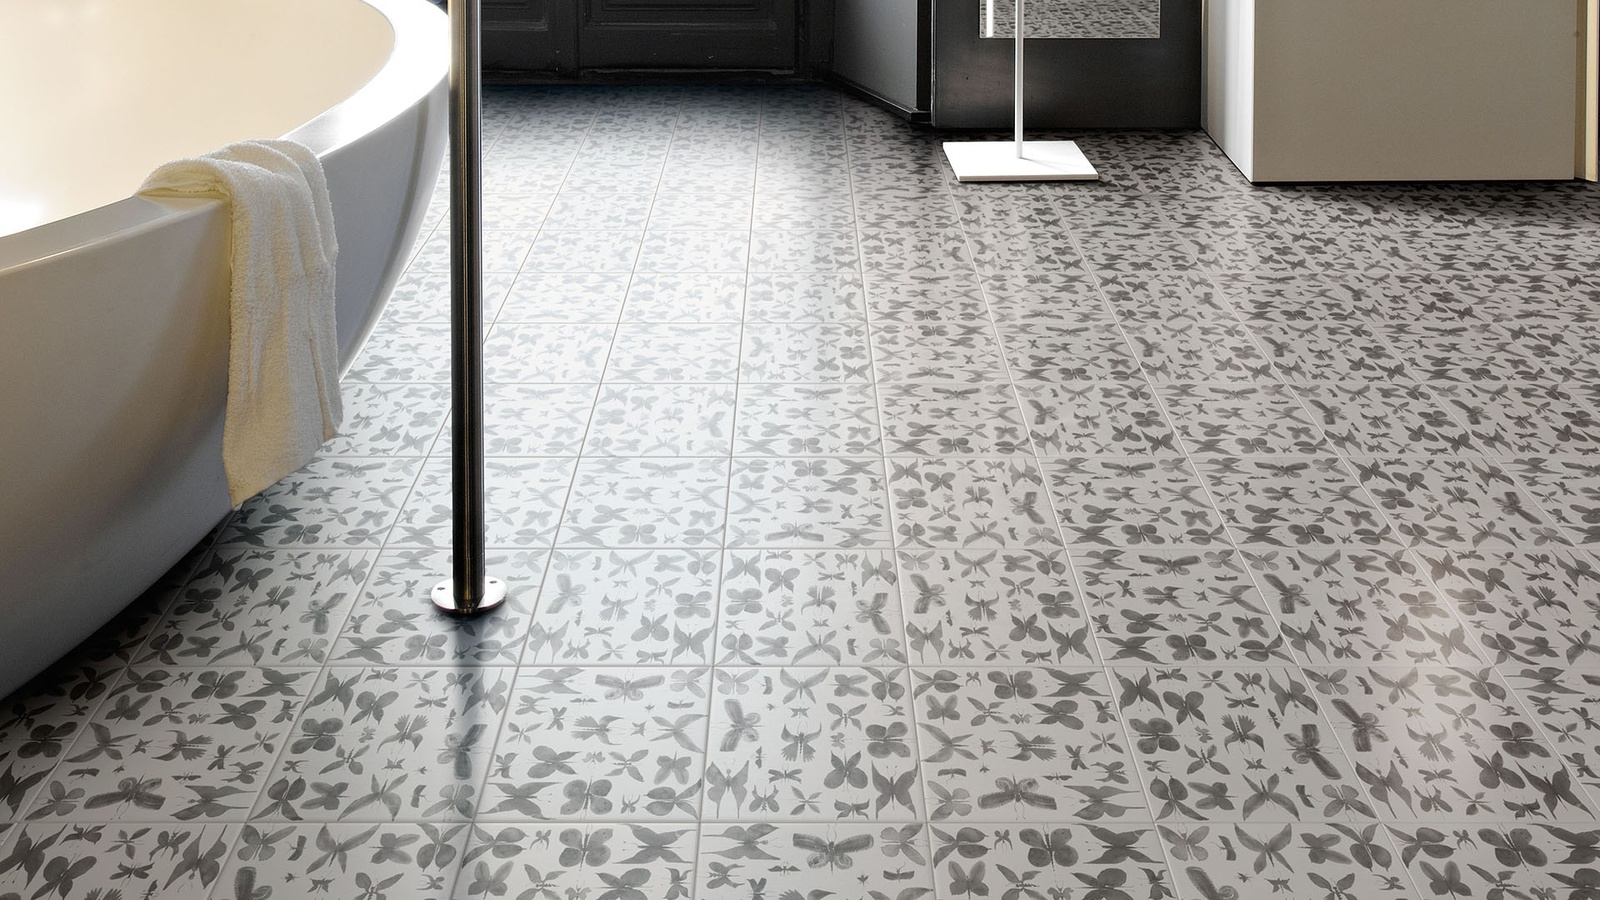 Ceramic Kitchen Floor Design Ideas ~ Beautiful tile flooring ideas for living room kitchen